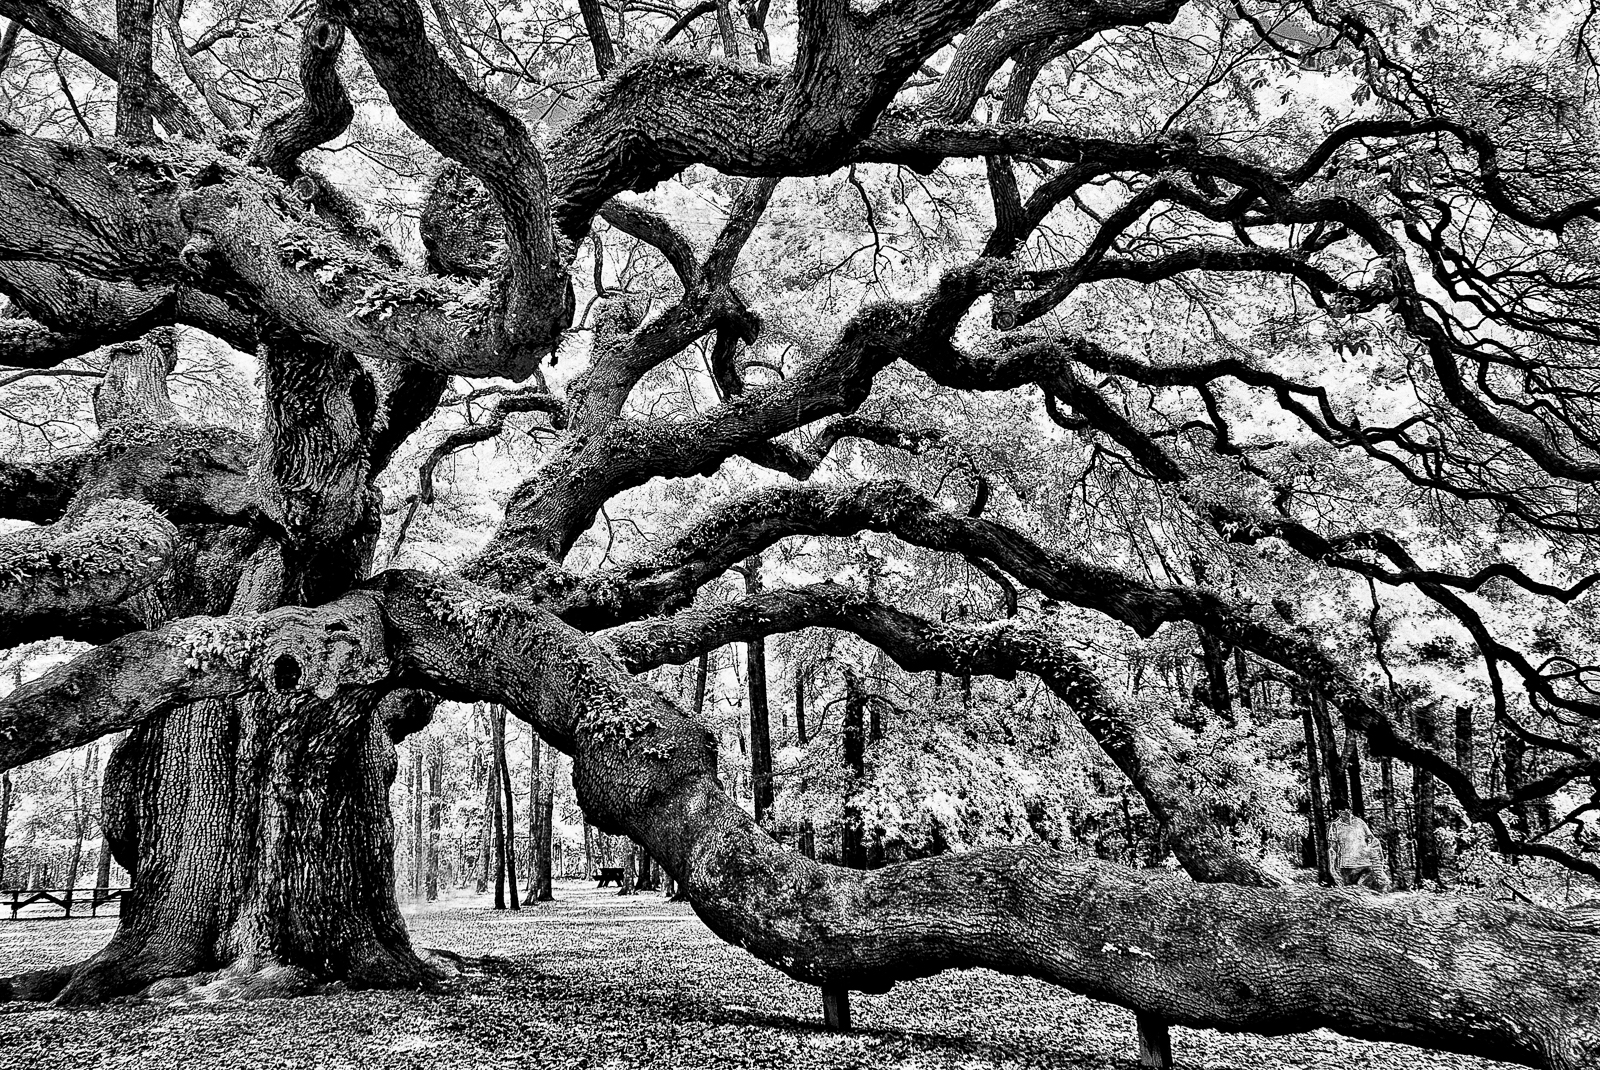 angel-oak-0759